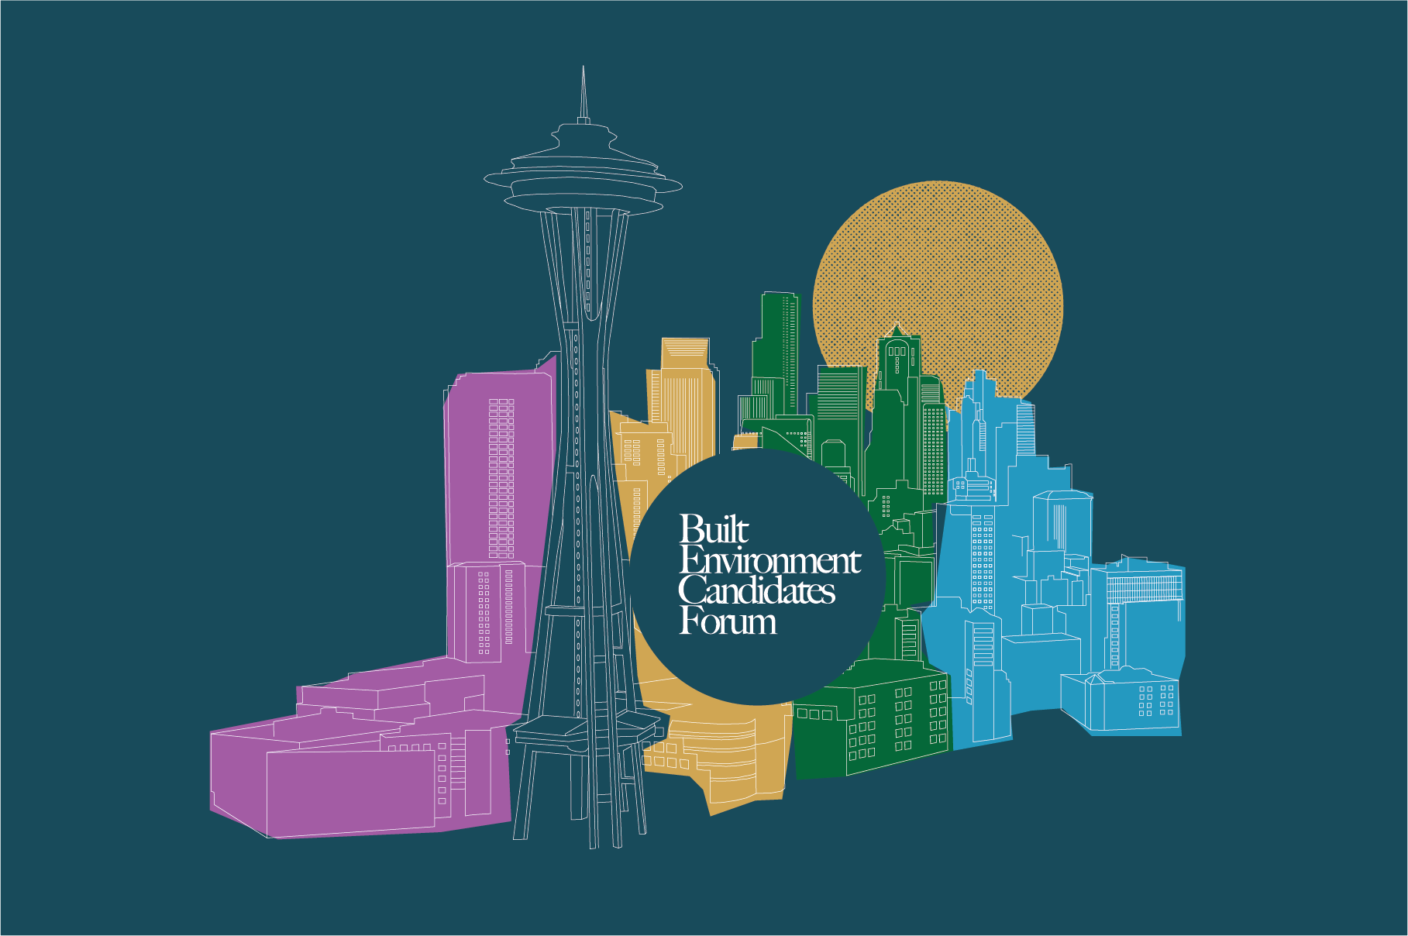 Seattle's primary elections for mayor and City Council seats 8 and 9 will be held via mail-in ballot on August 3. Join us for two candidate forums to hear the candidates' positions on built environment issues.